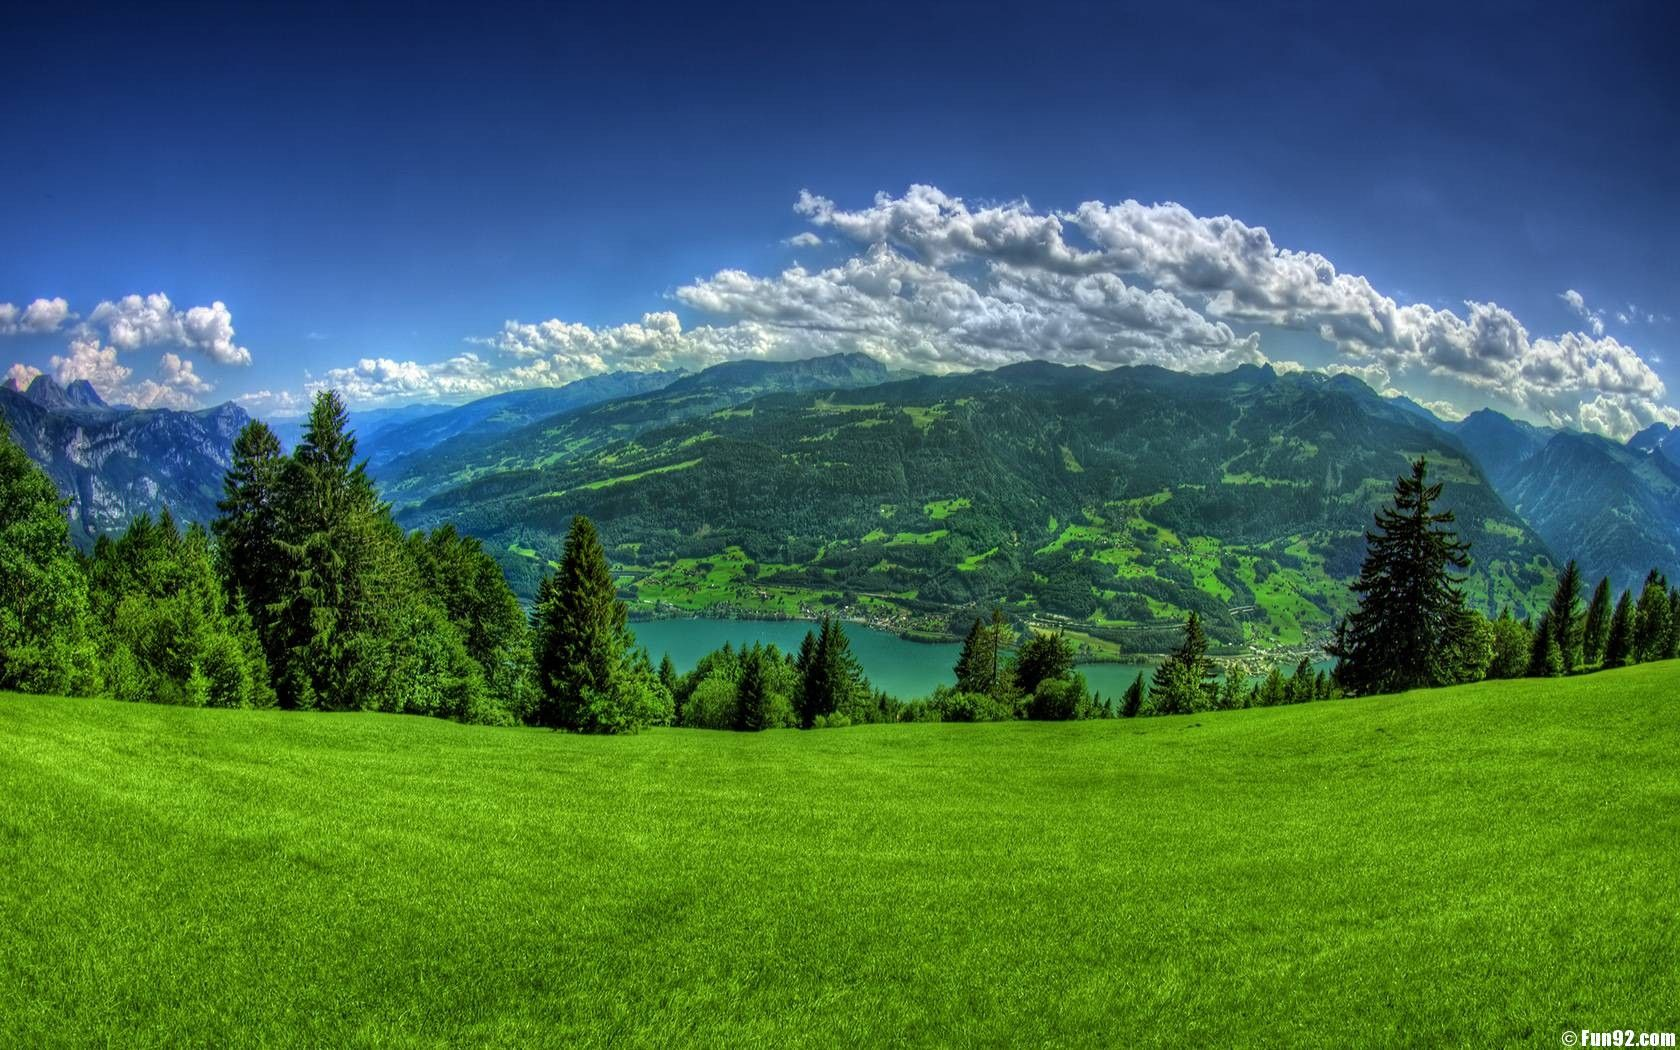 Landscape Background Field Earth Wallpapers For Desktop Jpg 1680 1050 Beautiful Places In The World Green Landscape Landscape Wallpaper